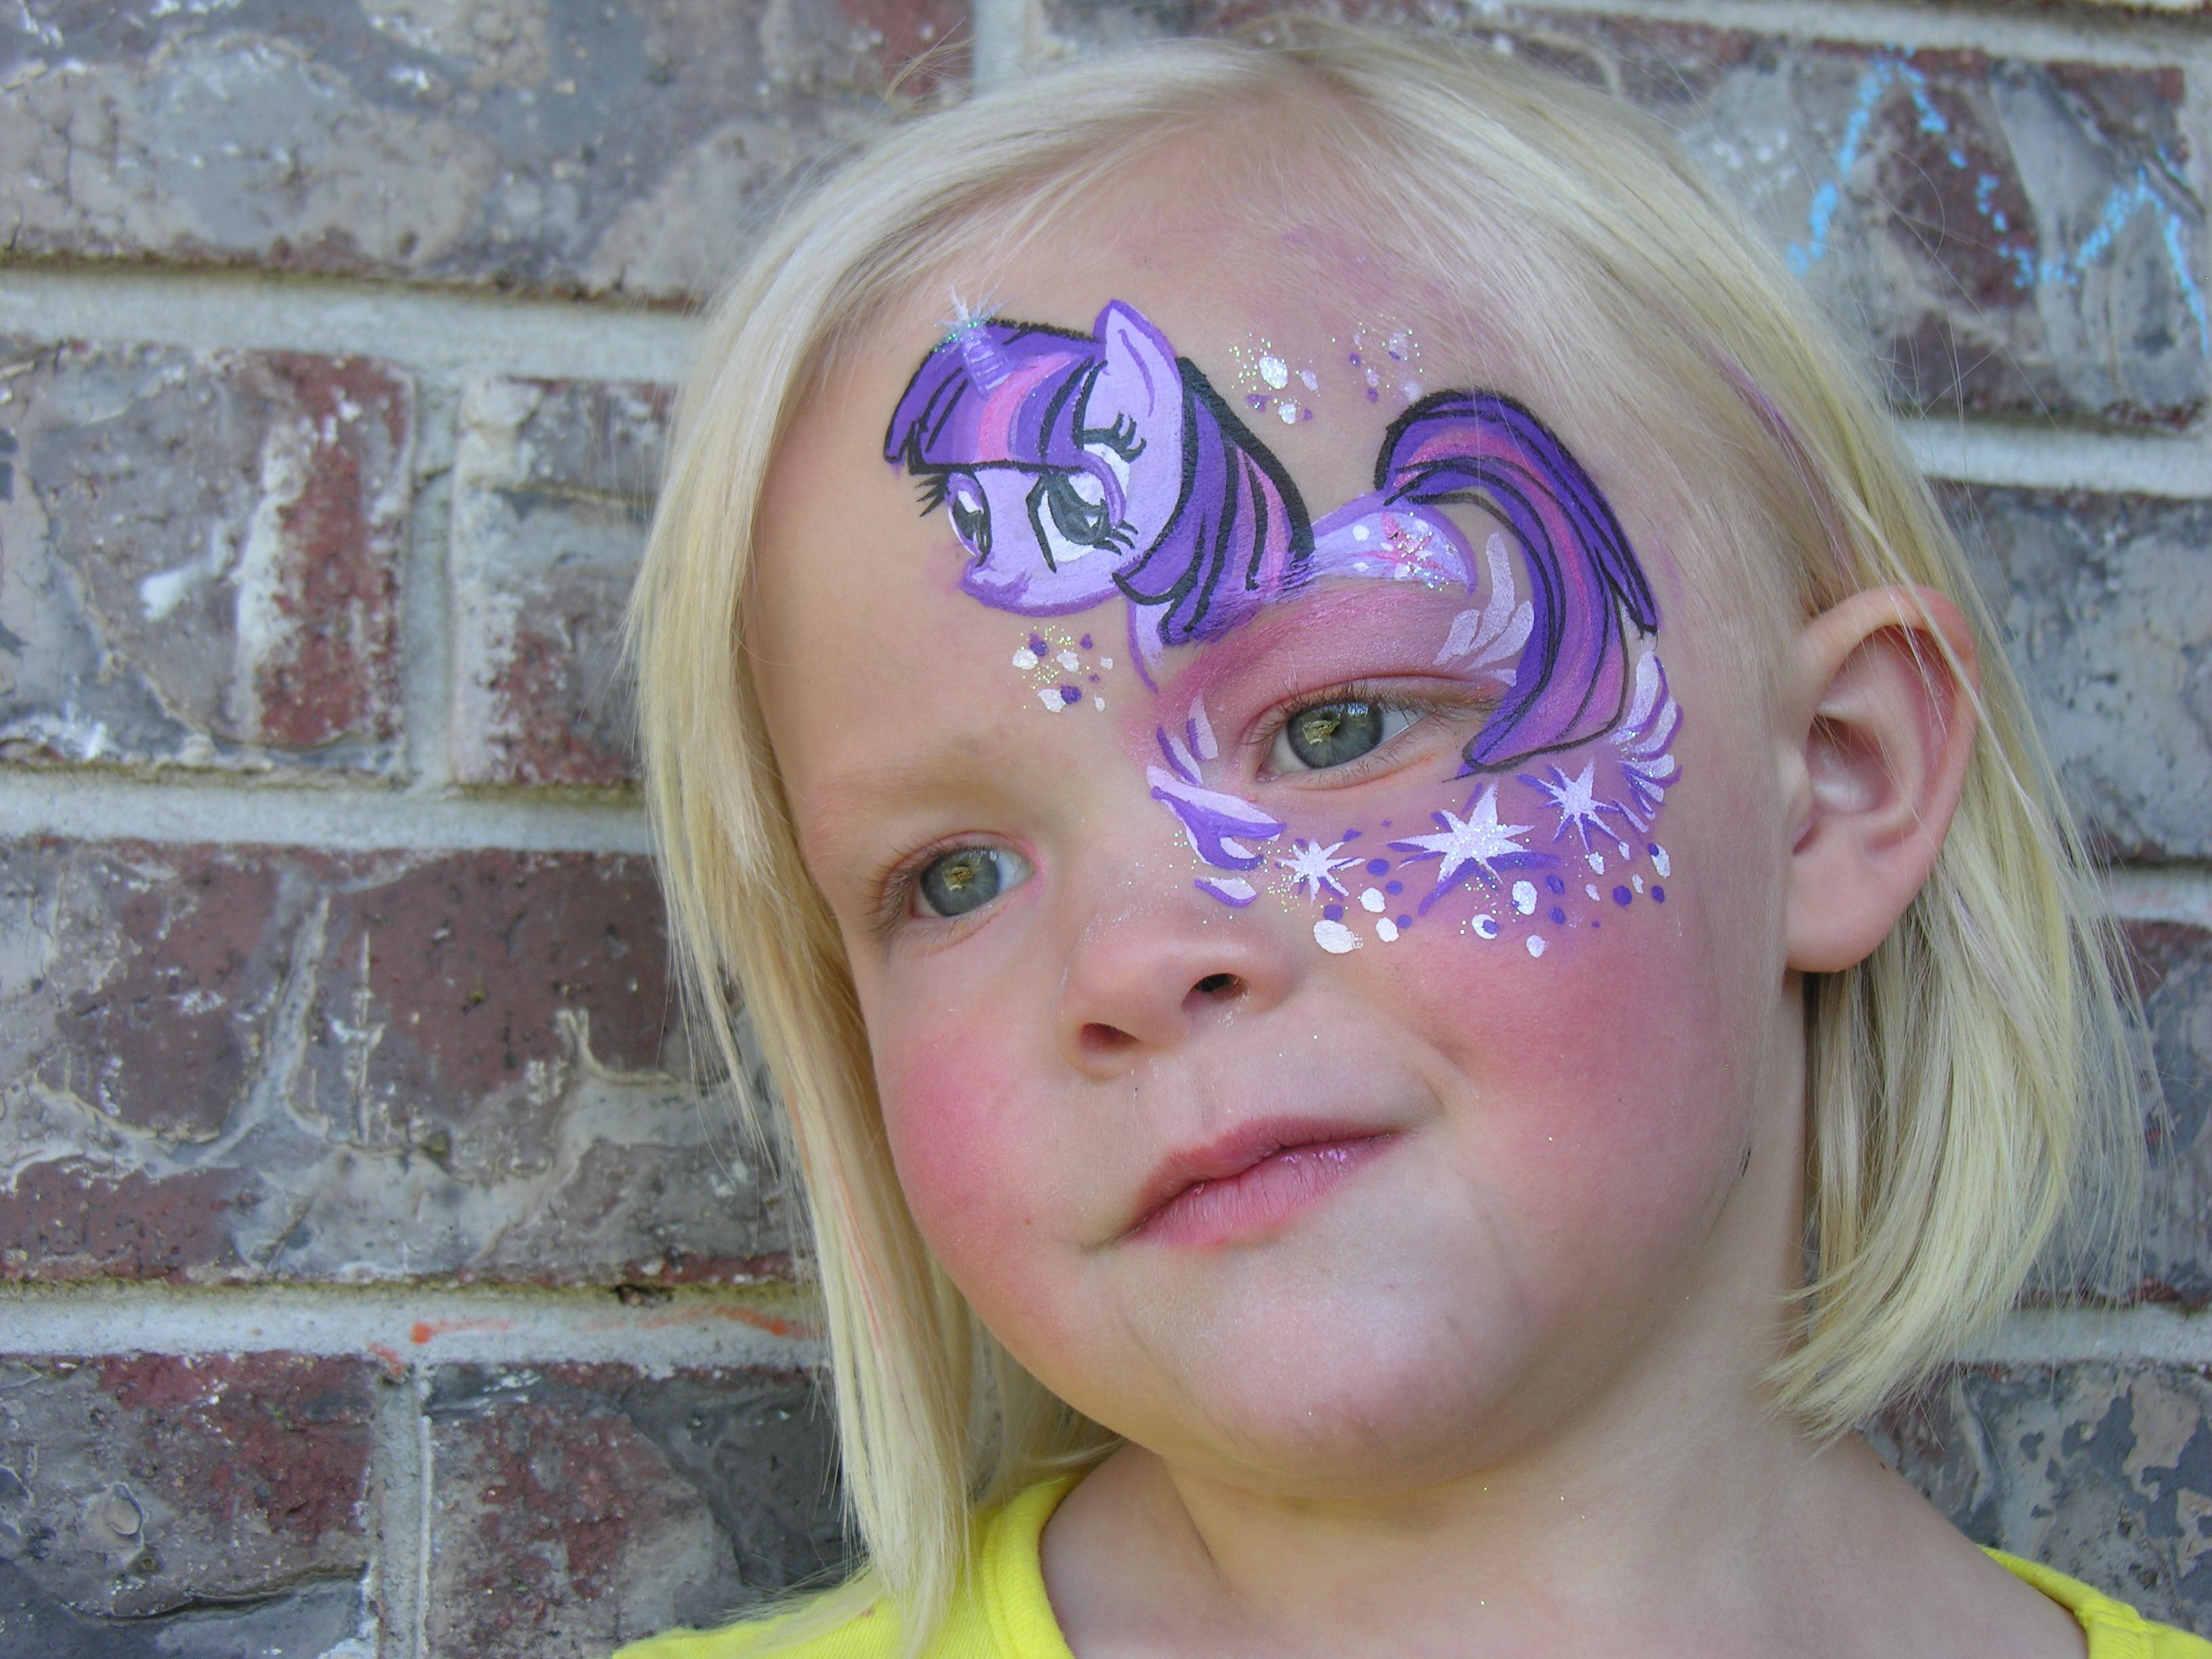 my little pony face paint | The Painted Otter